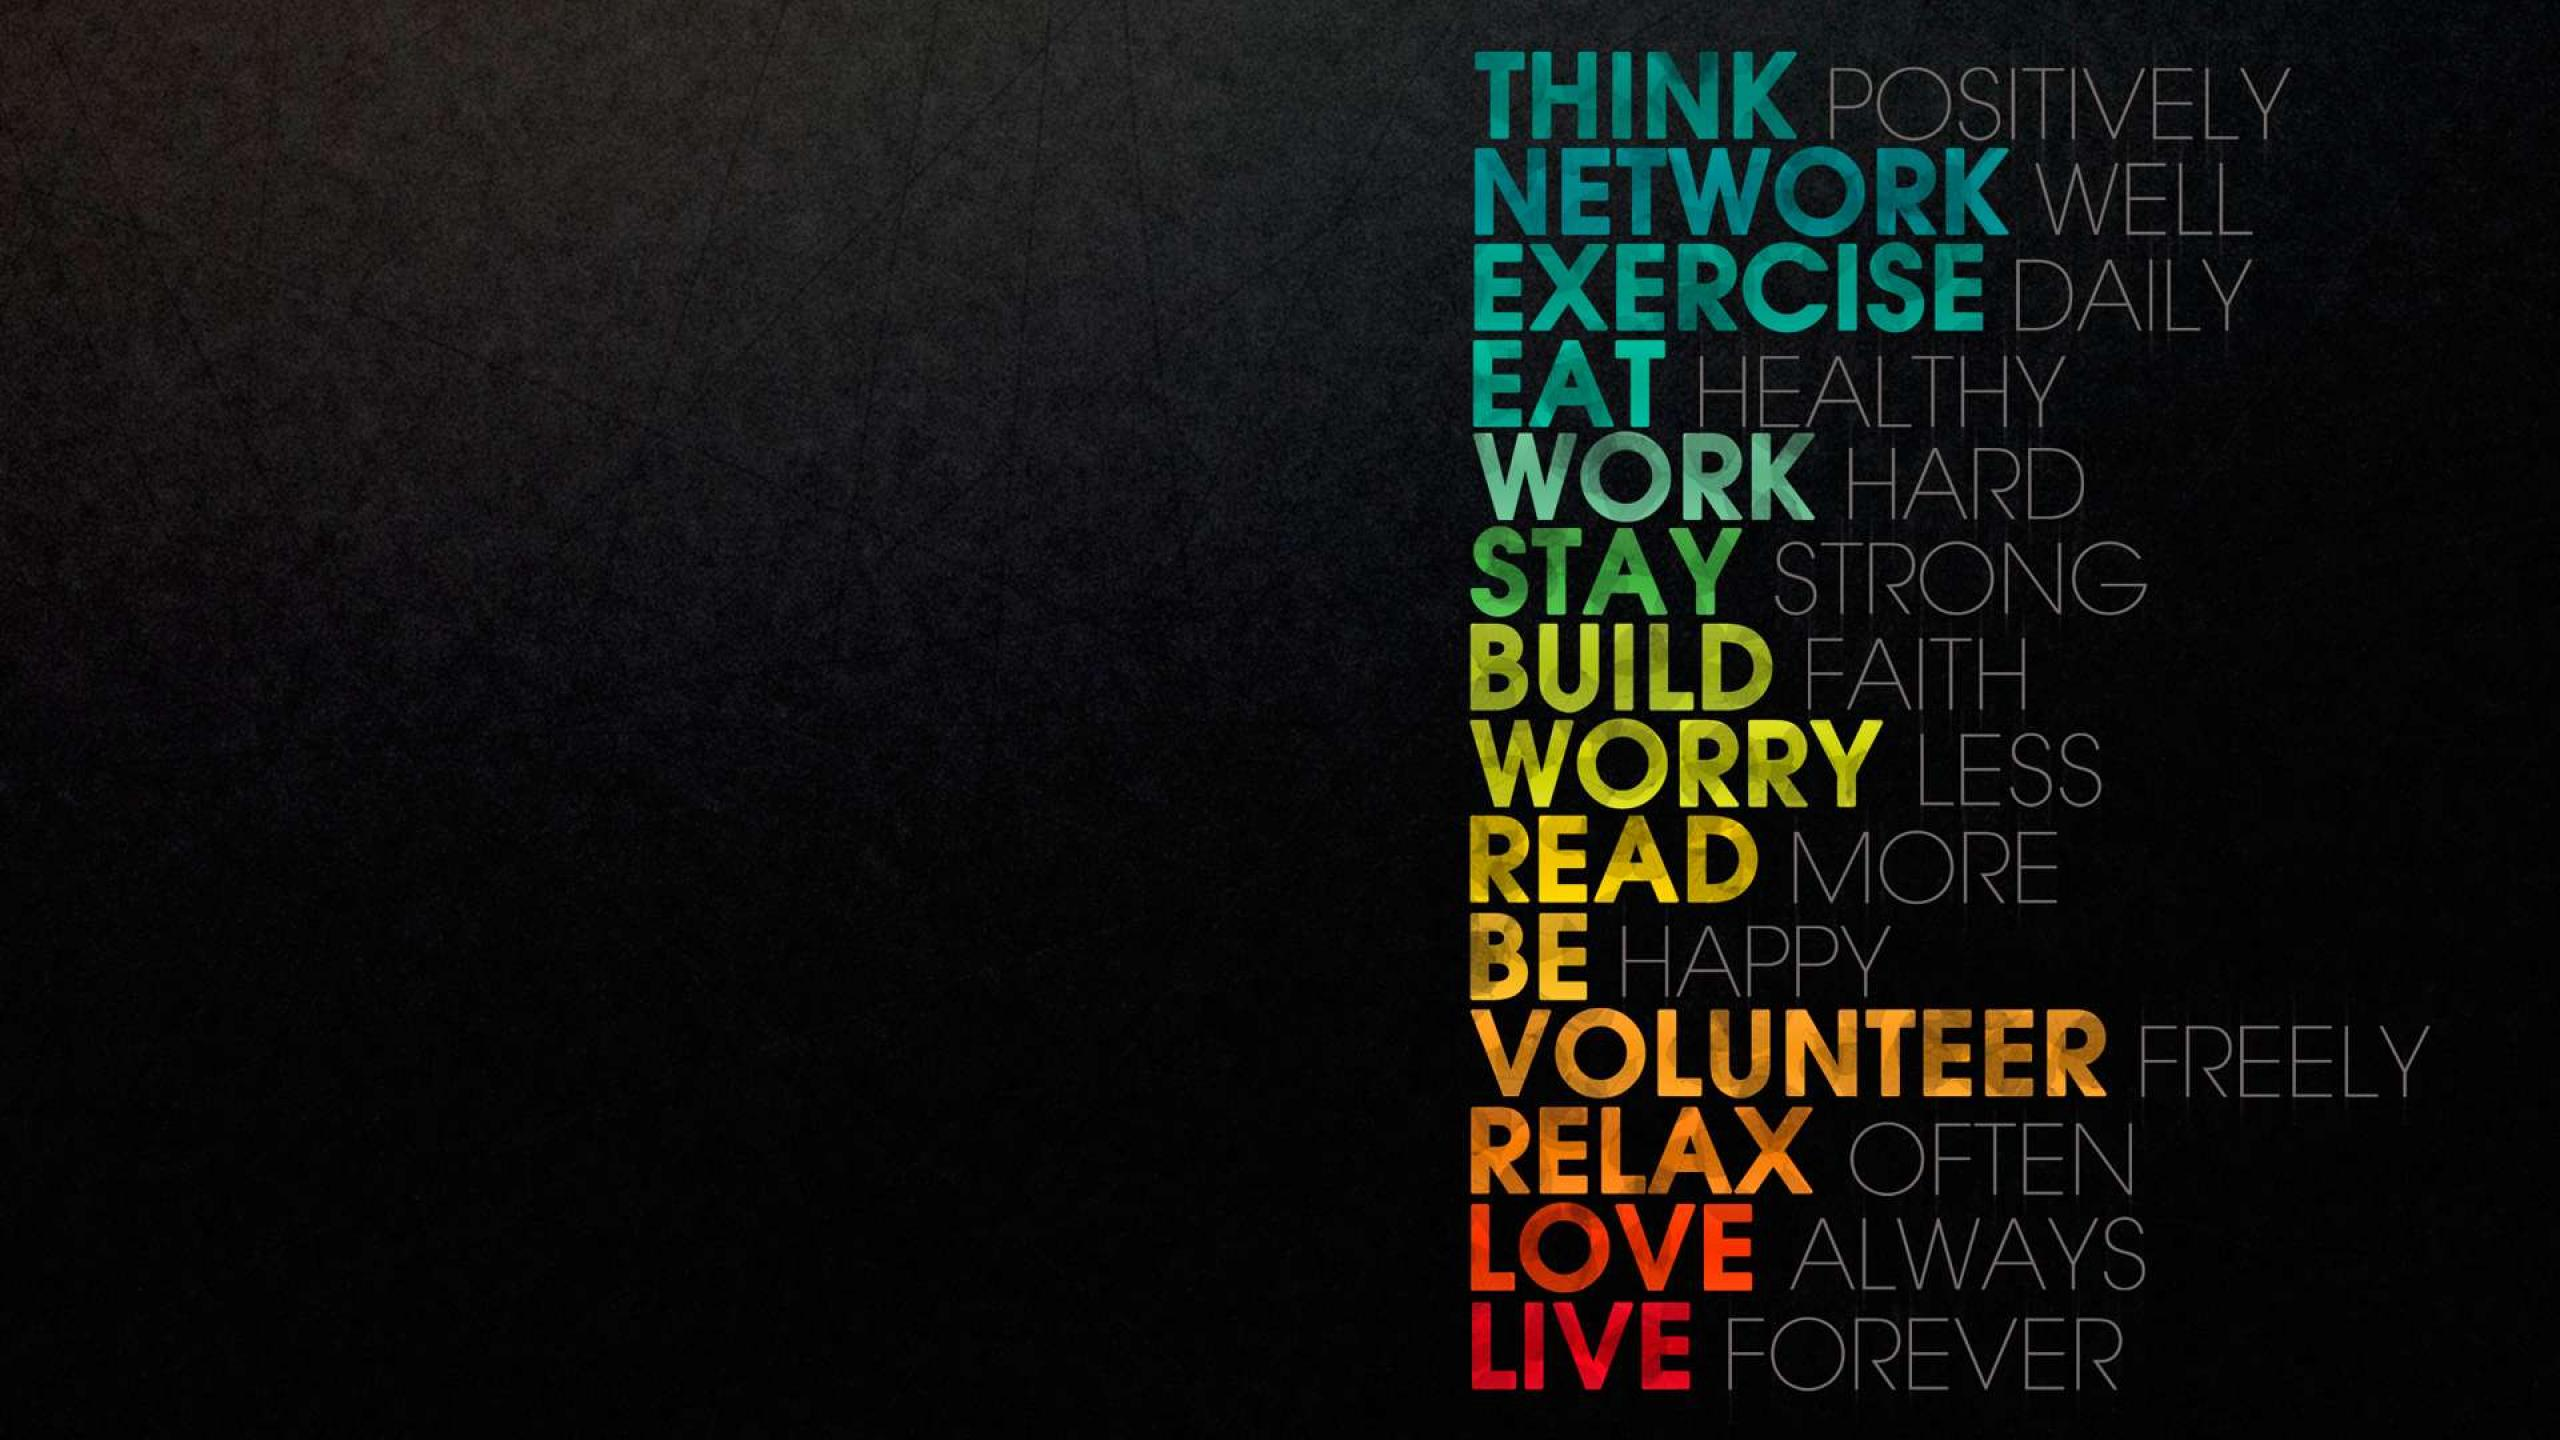 HD Wallpapers 2560x1440 Inspirational Wallpapers 2560x1440 Download 2560x1440